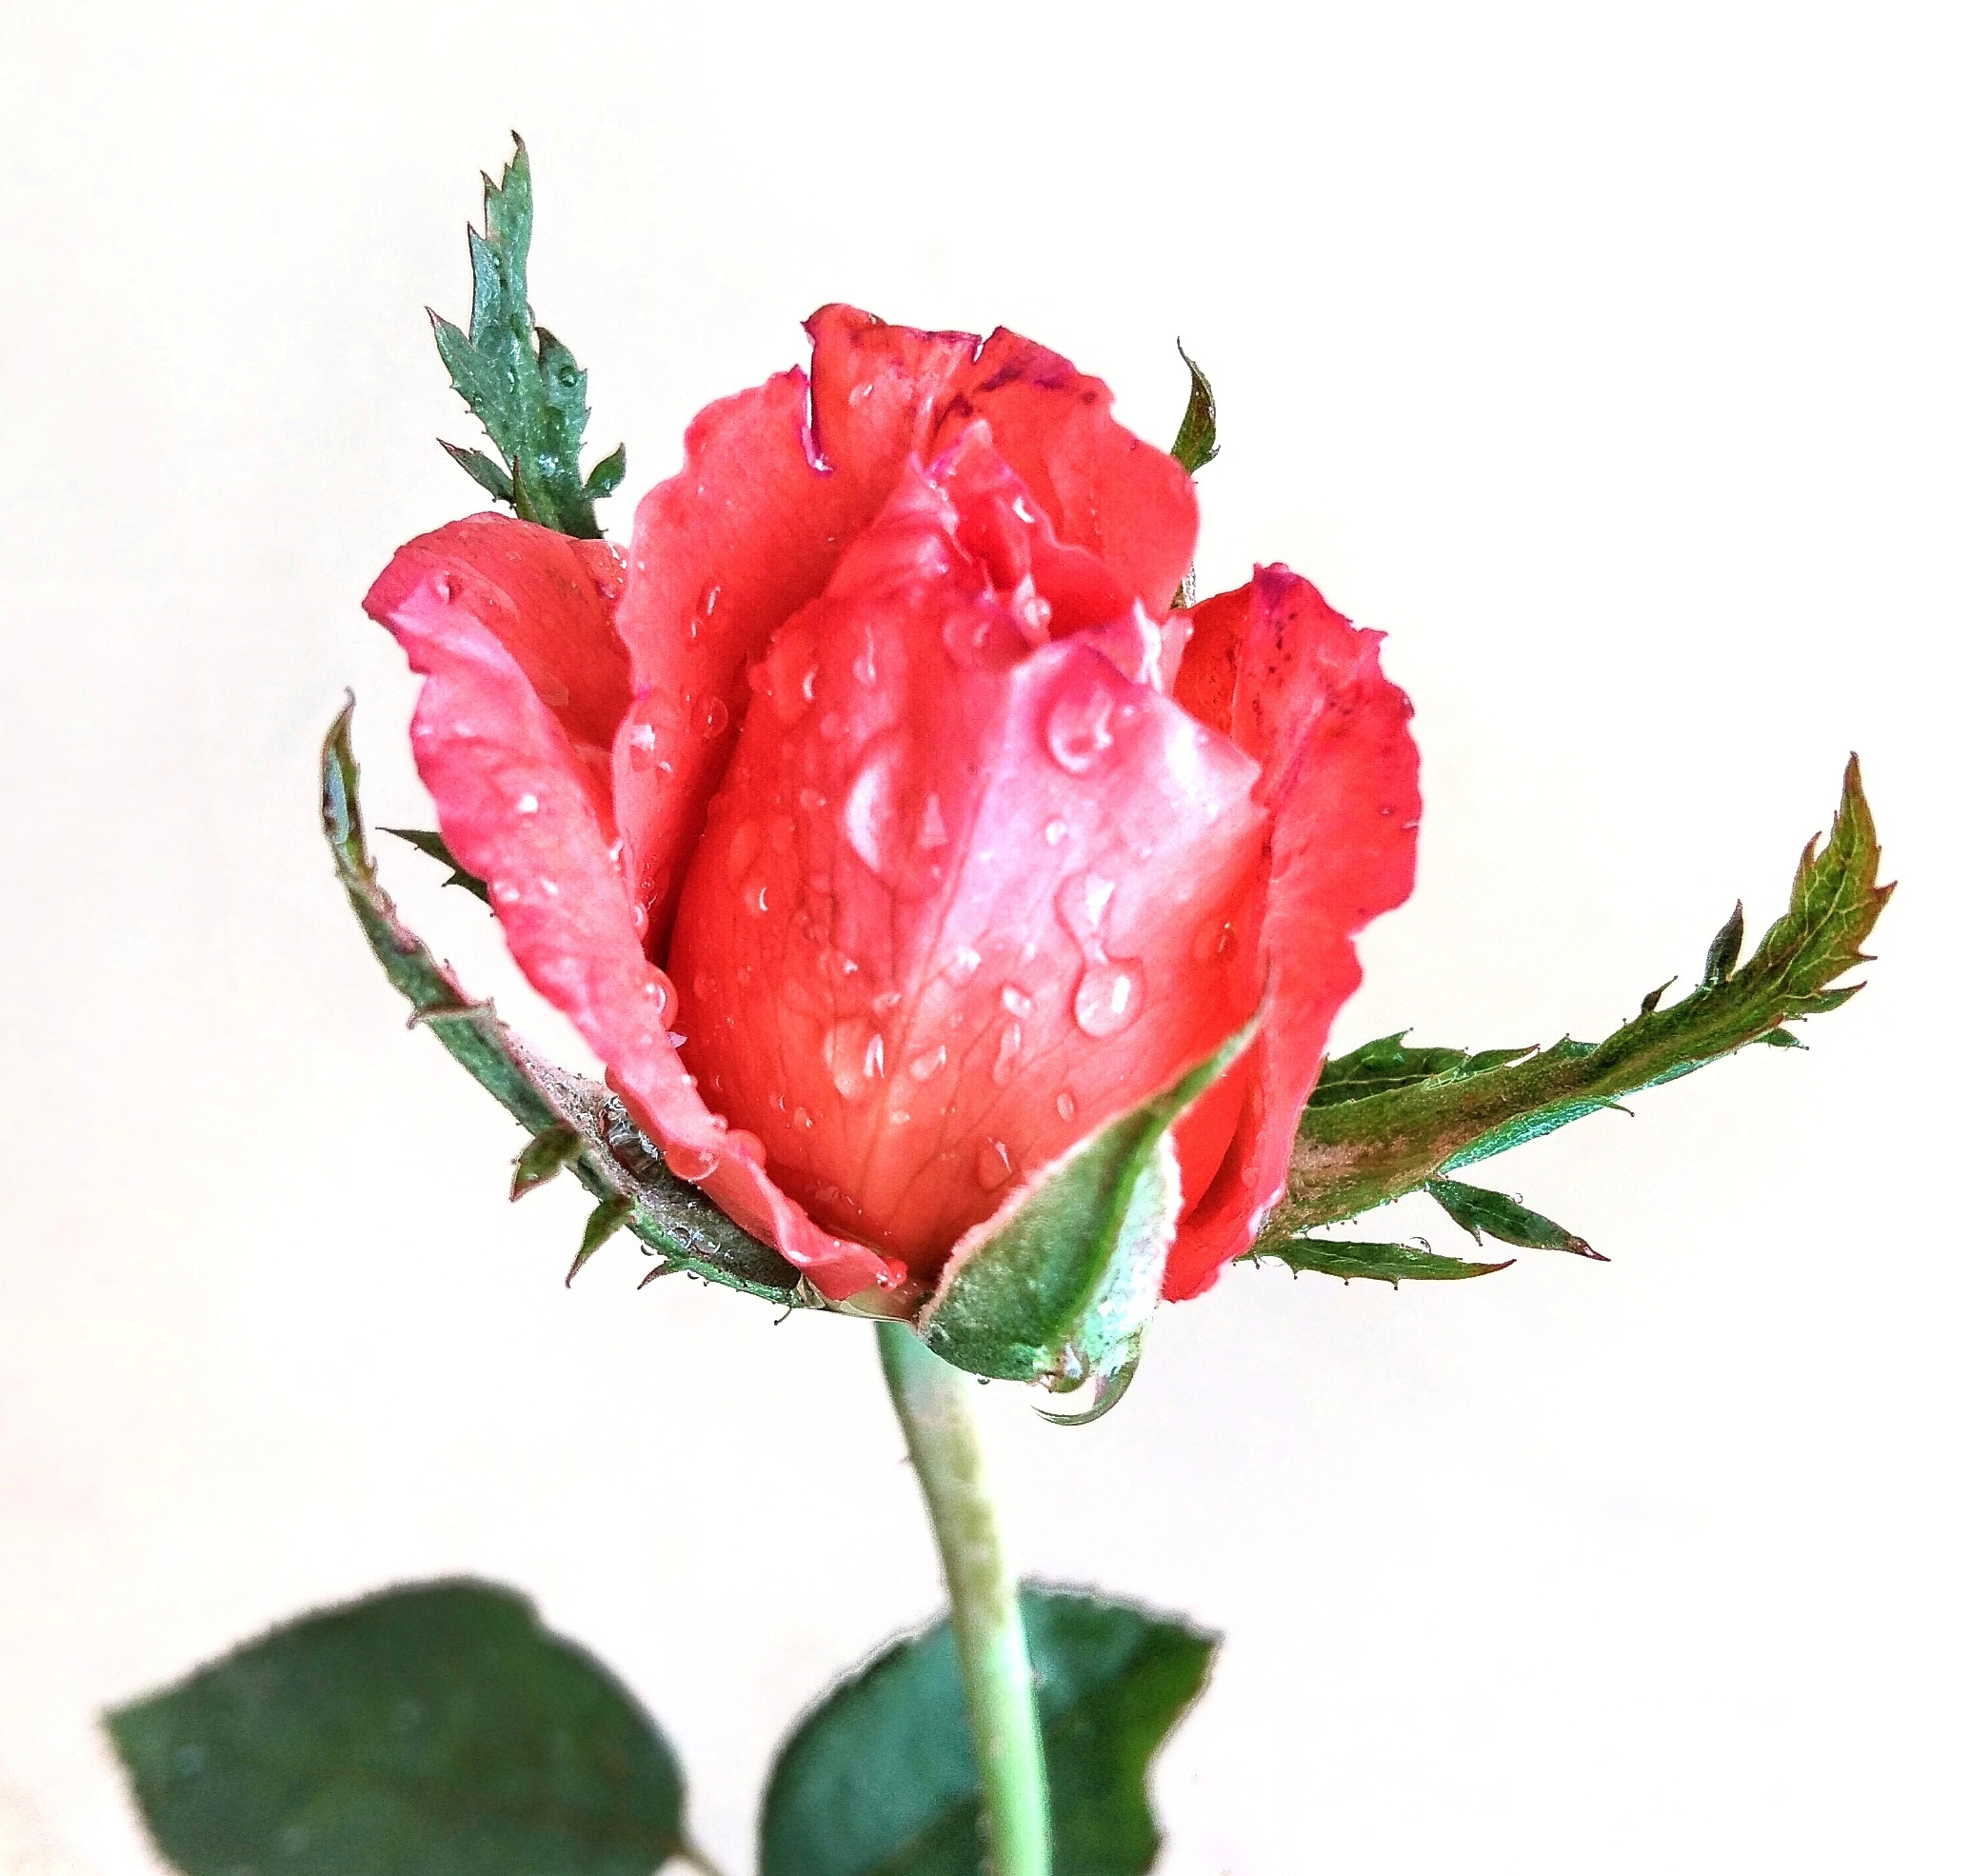 Water droplets on rose flower